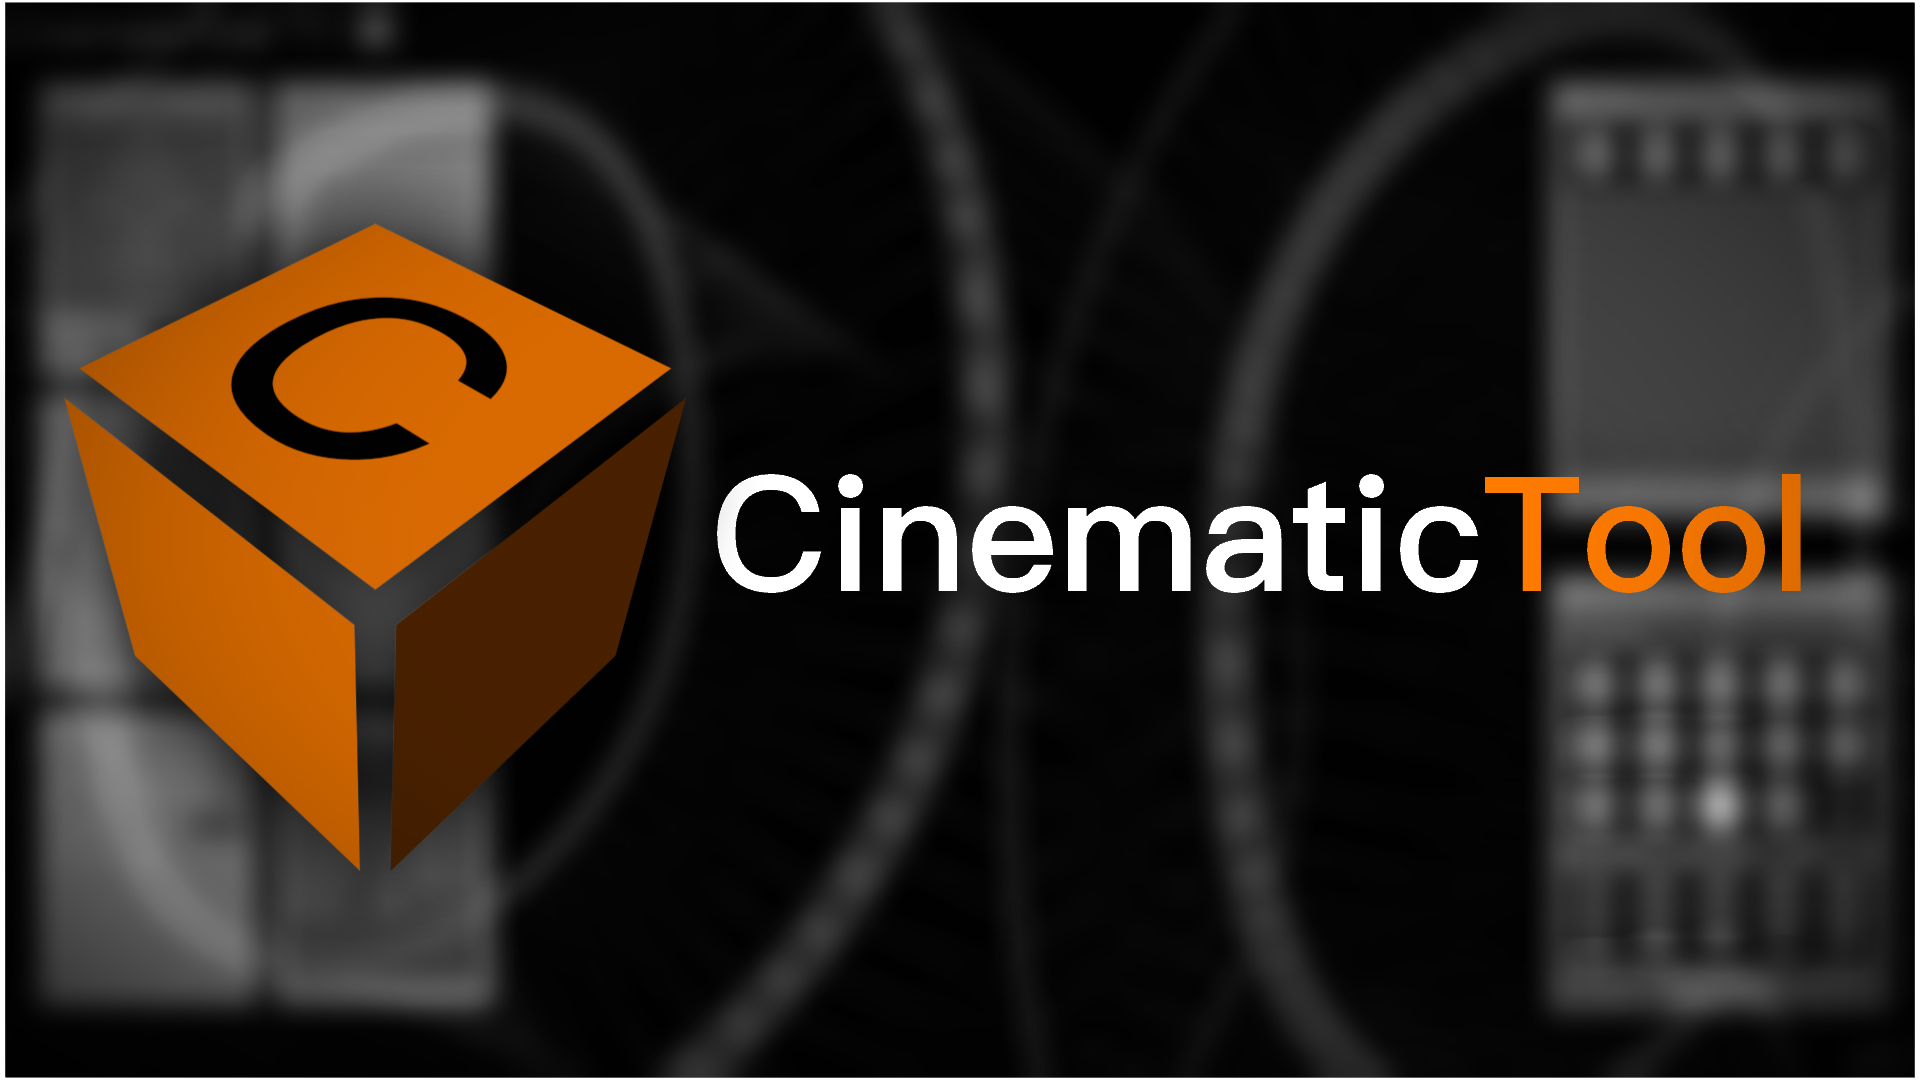 CinematicTool